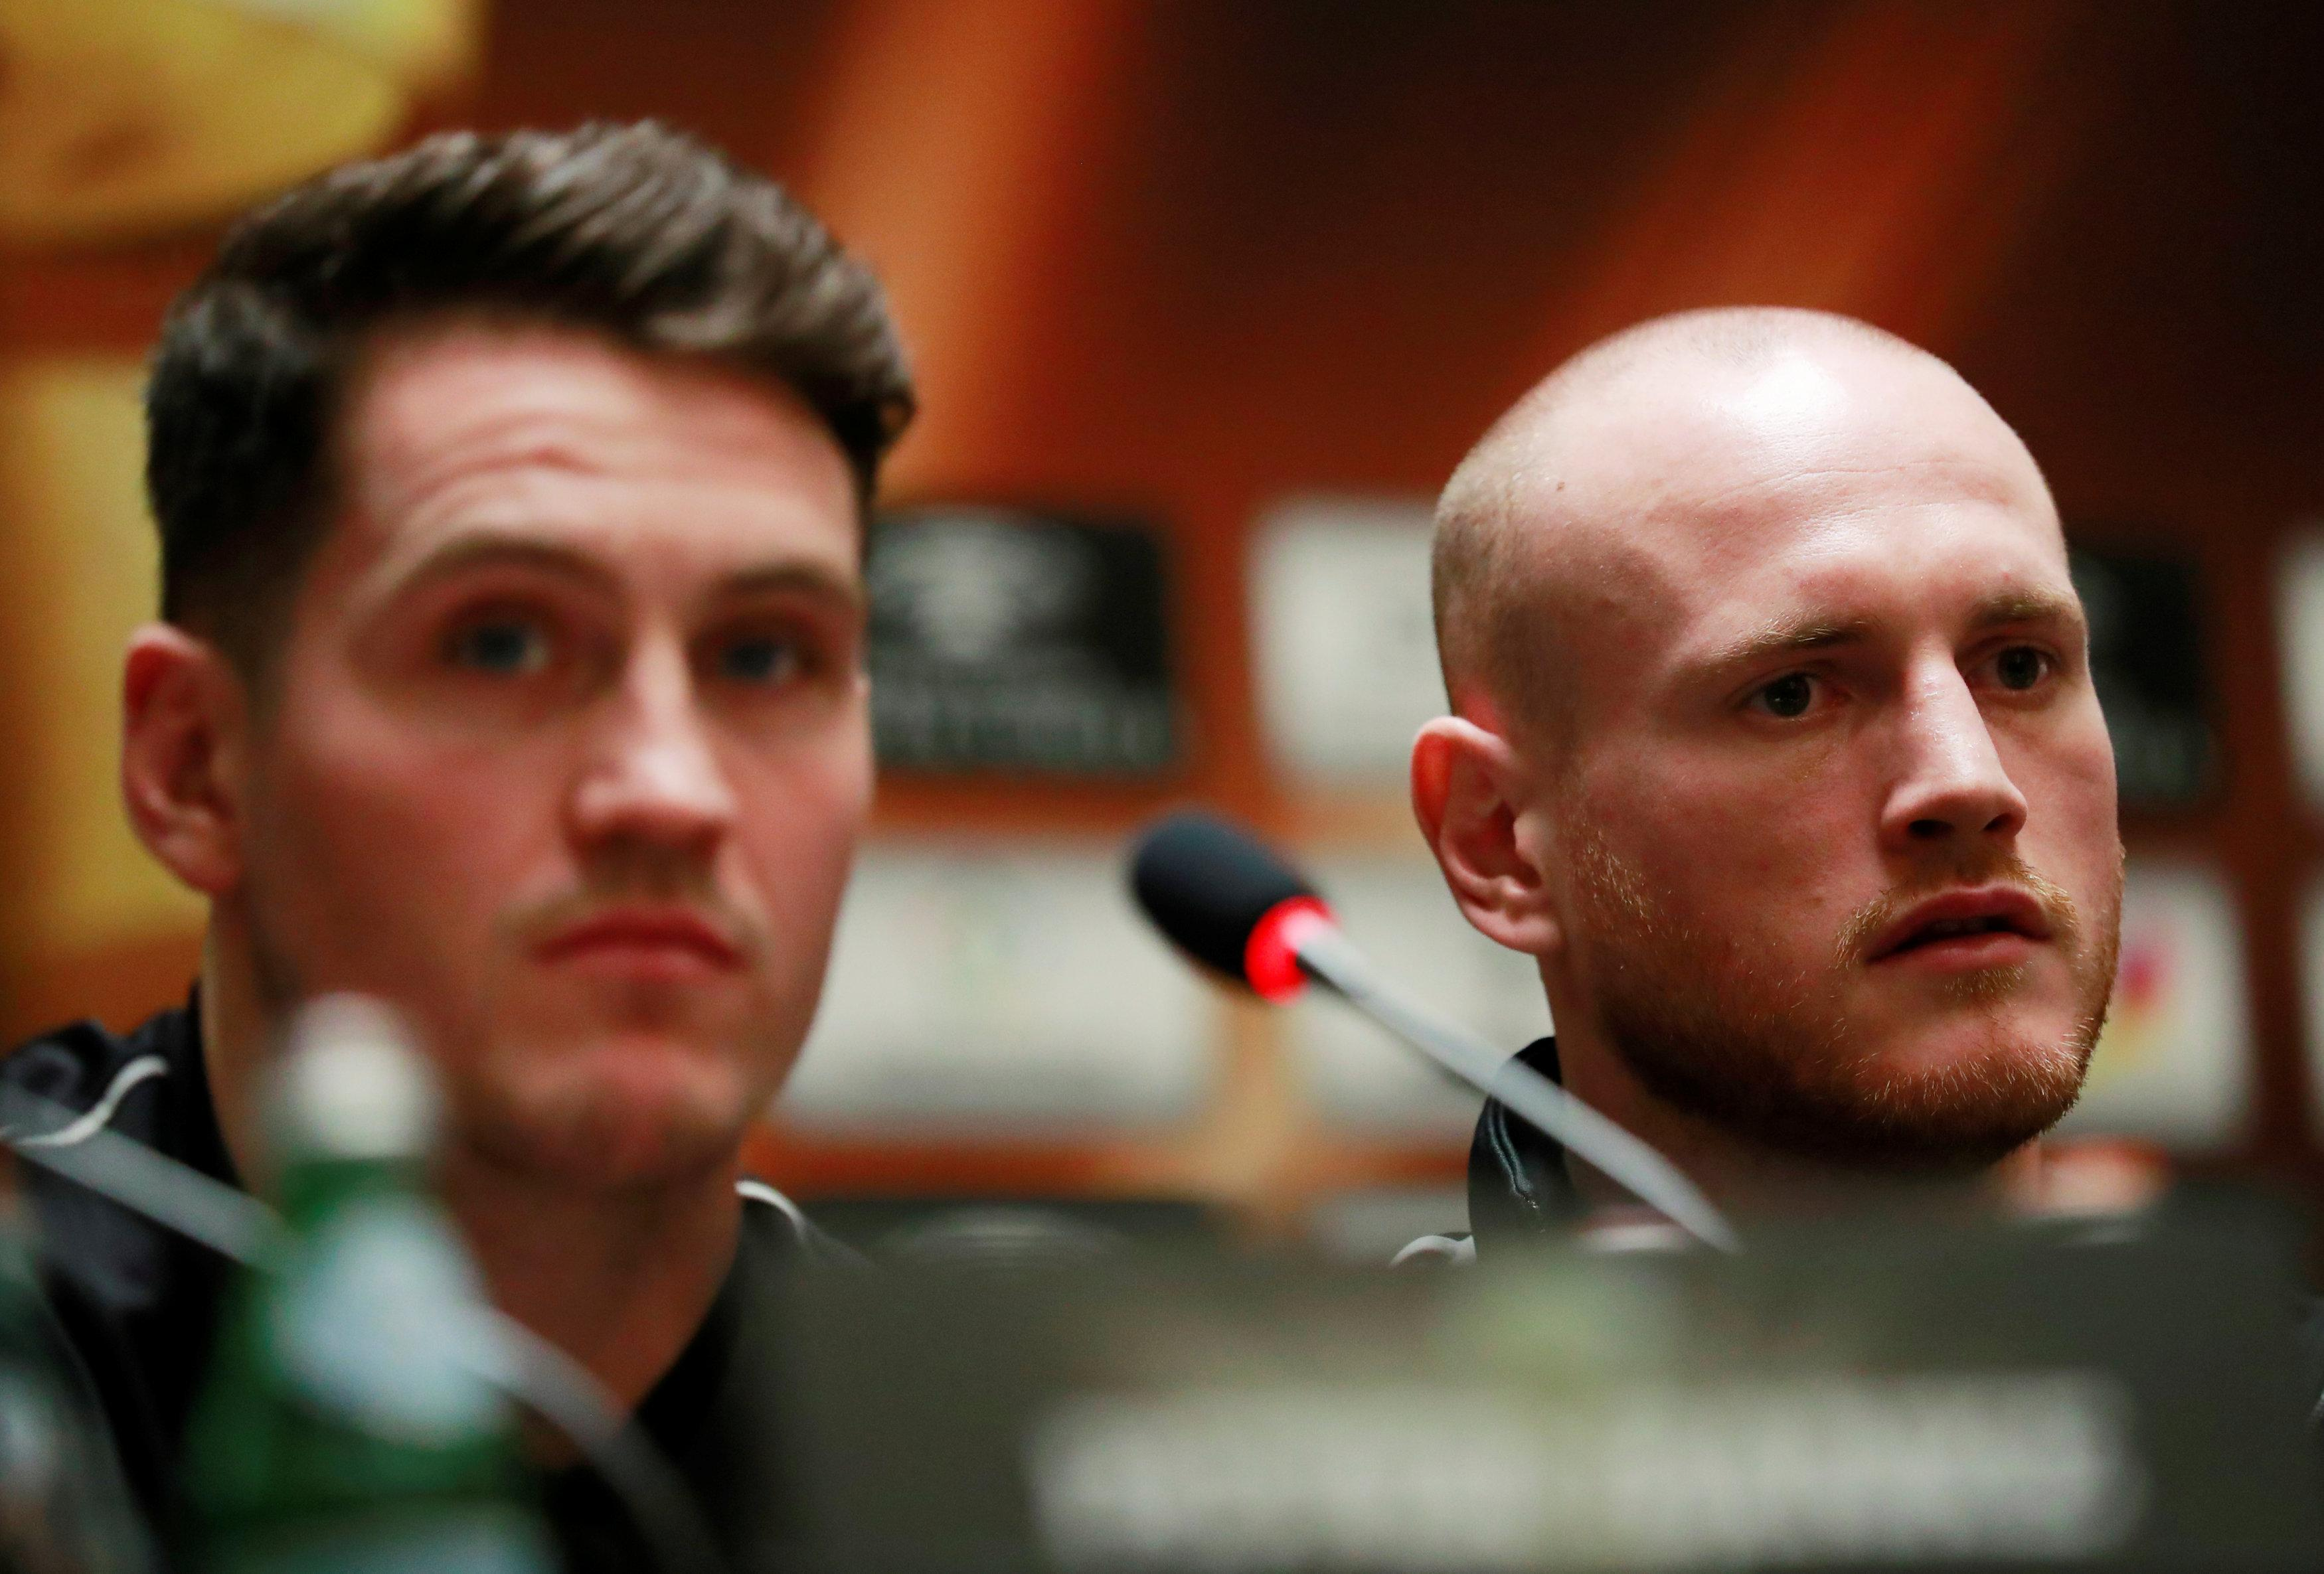 Shane McGuigan has revealed that Groves is taking some time out from boxing